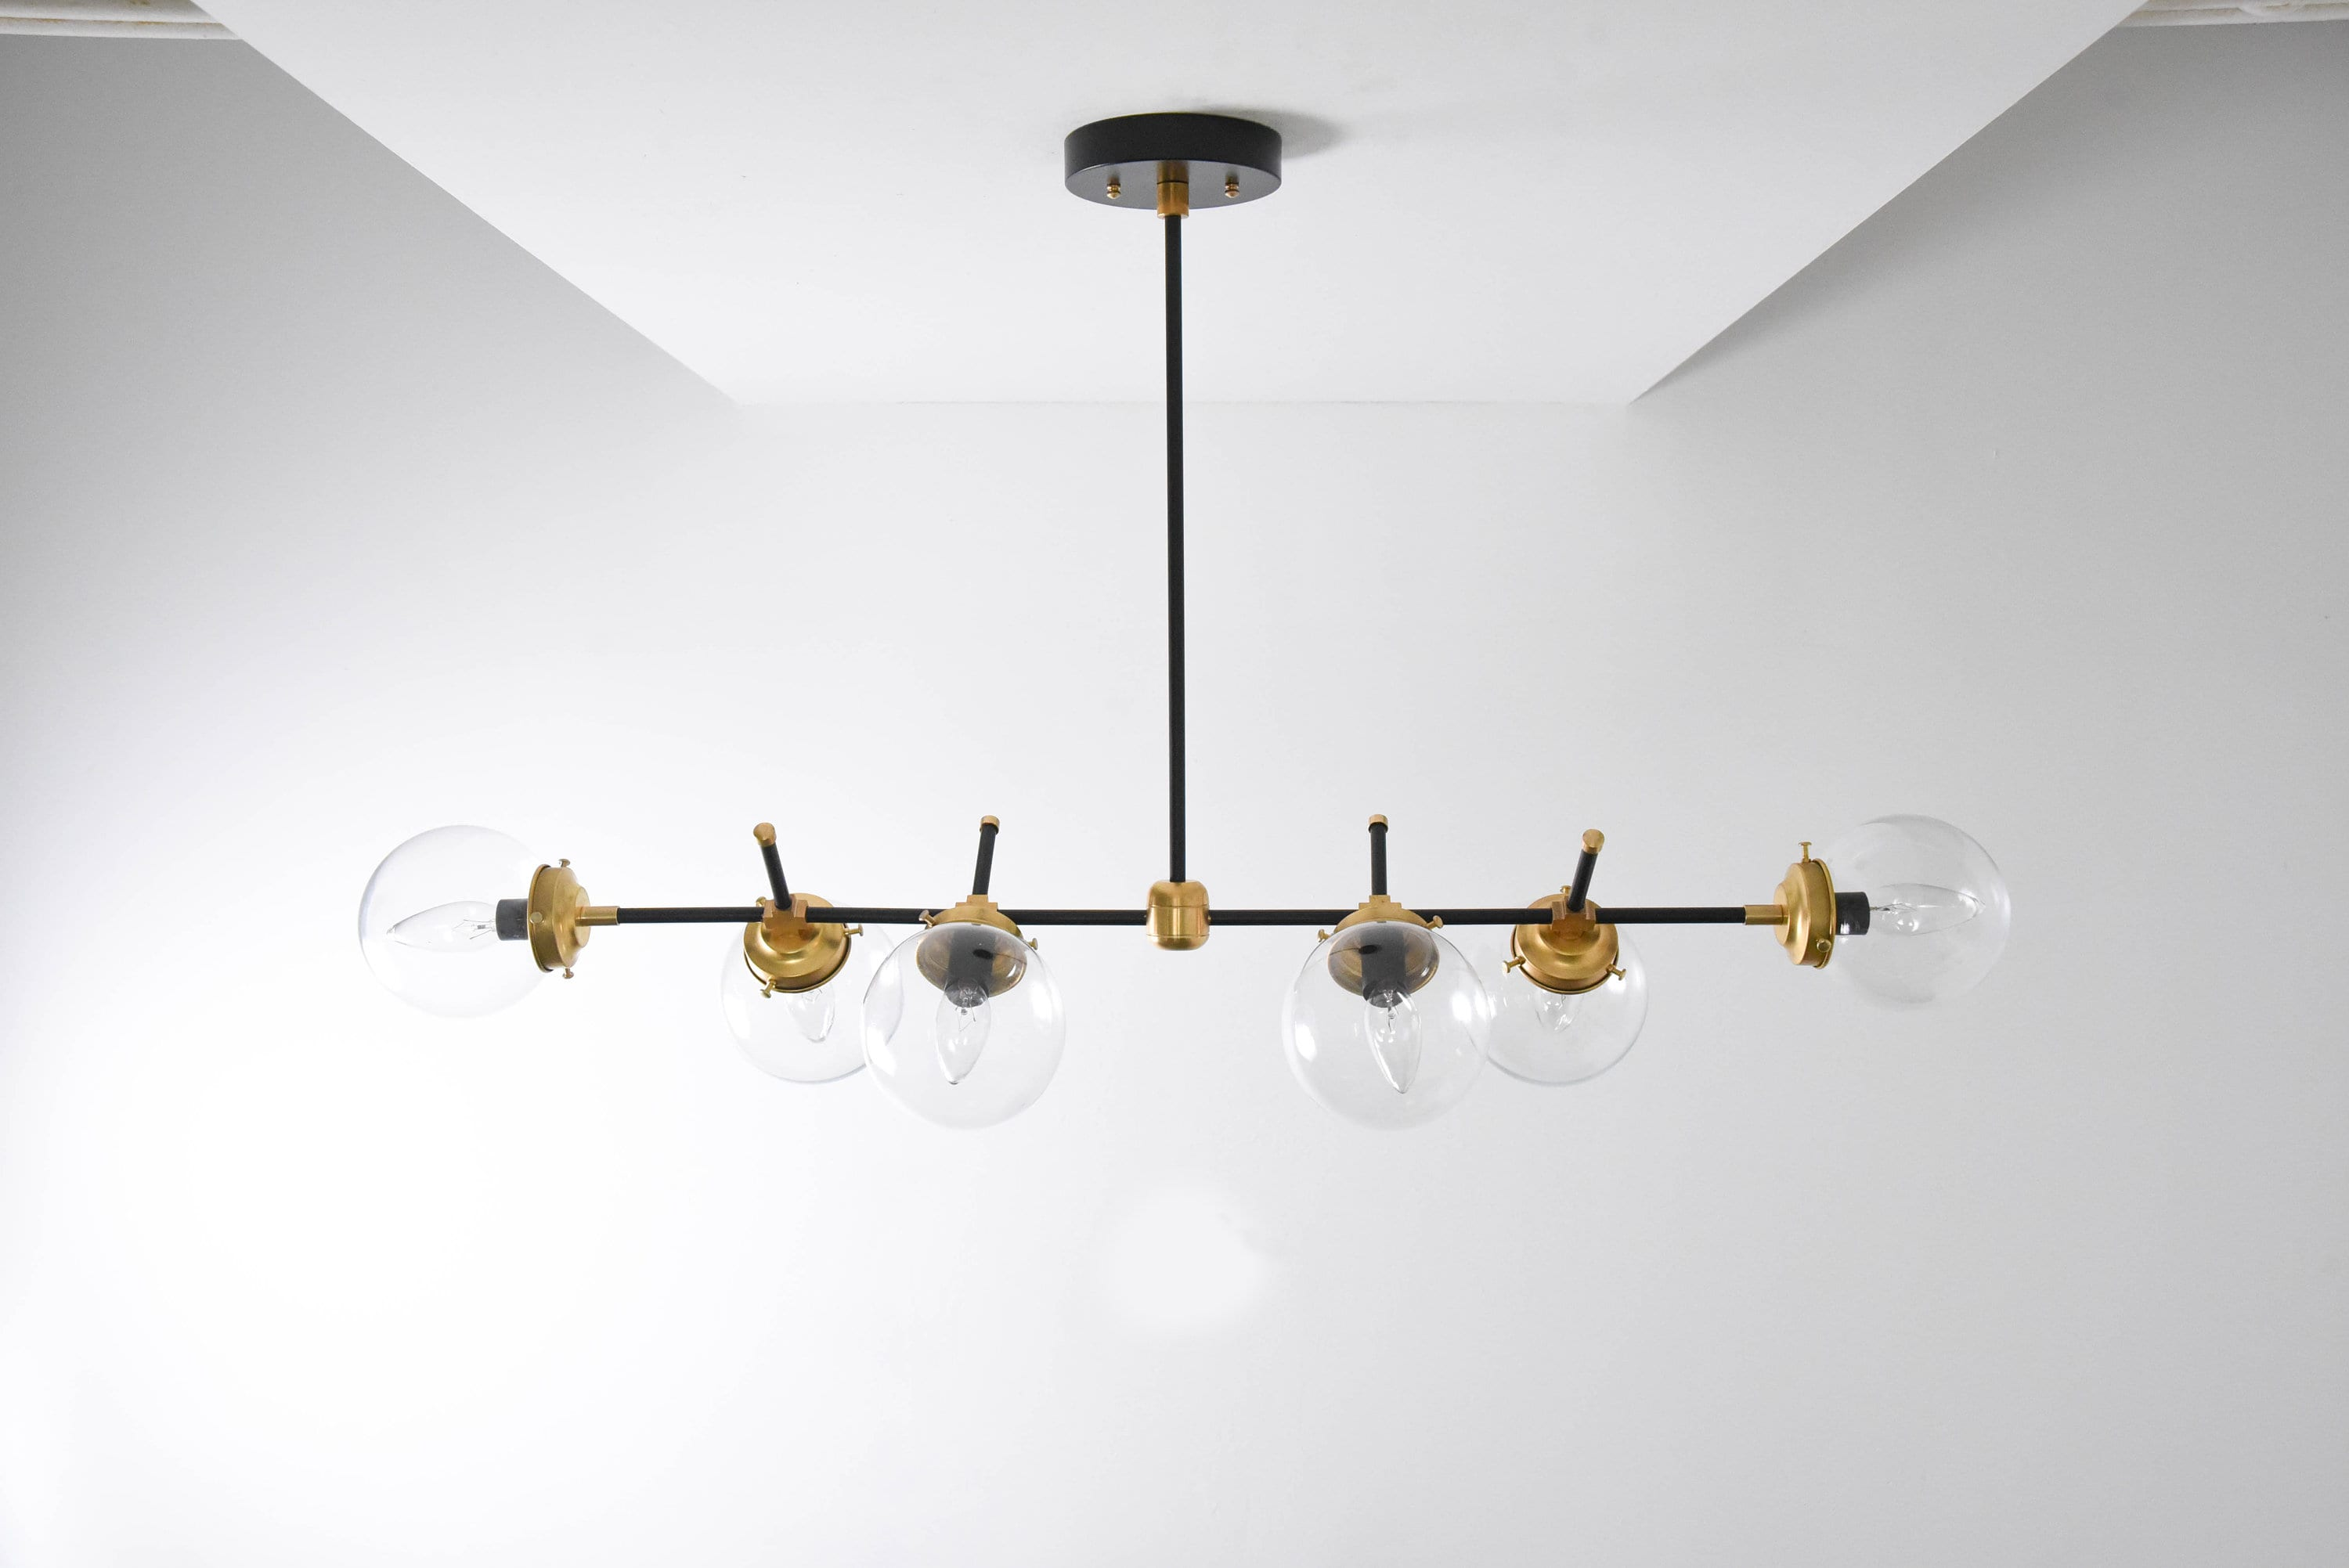 Modern bubble candelabra chandelier raw brass gold 6 arm light clear modern bubble candelabra chandelier raw brass gold 6 arm light clear globe pinwheel sputnik mid century industrial hanging light ul listed arubaitofo Image collections